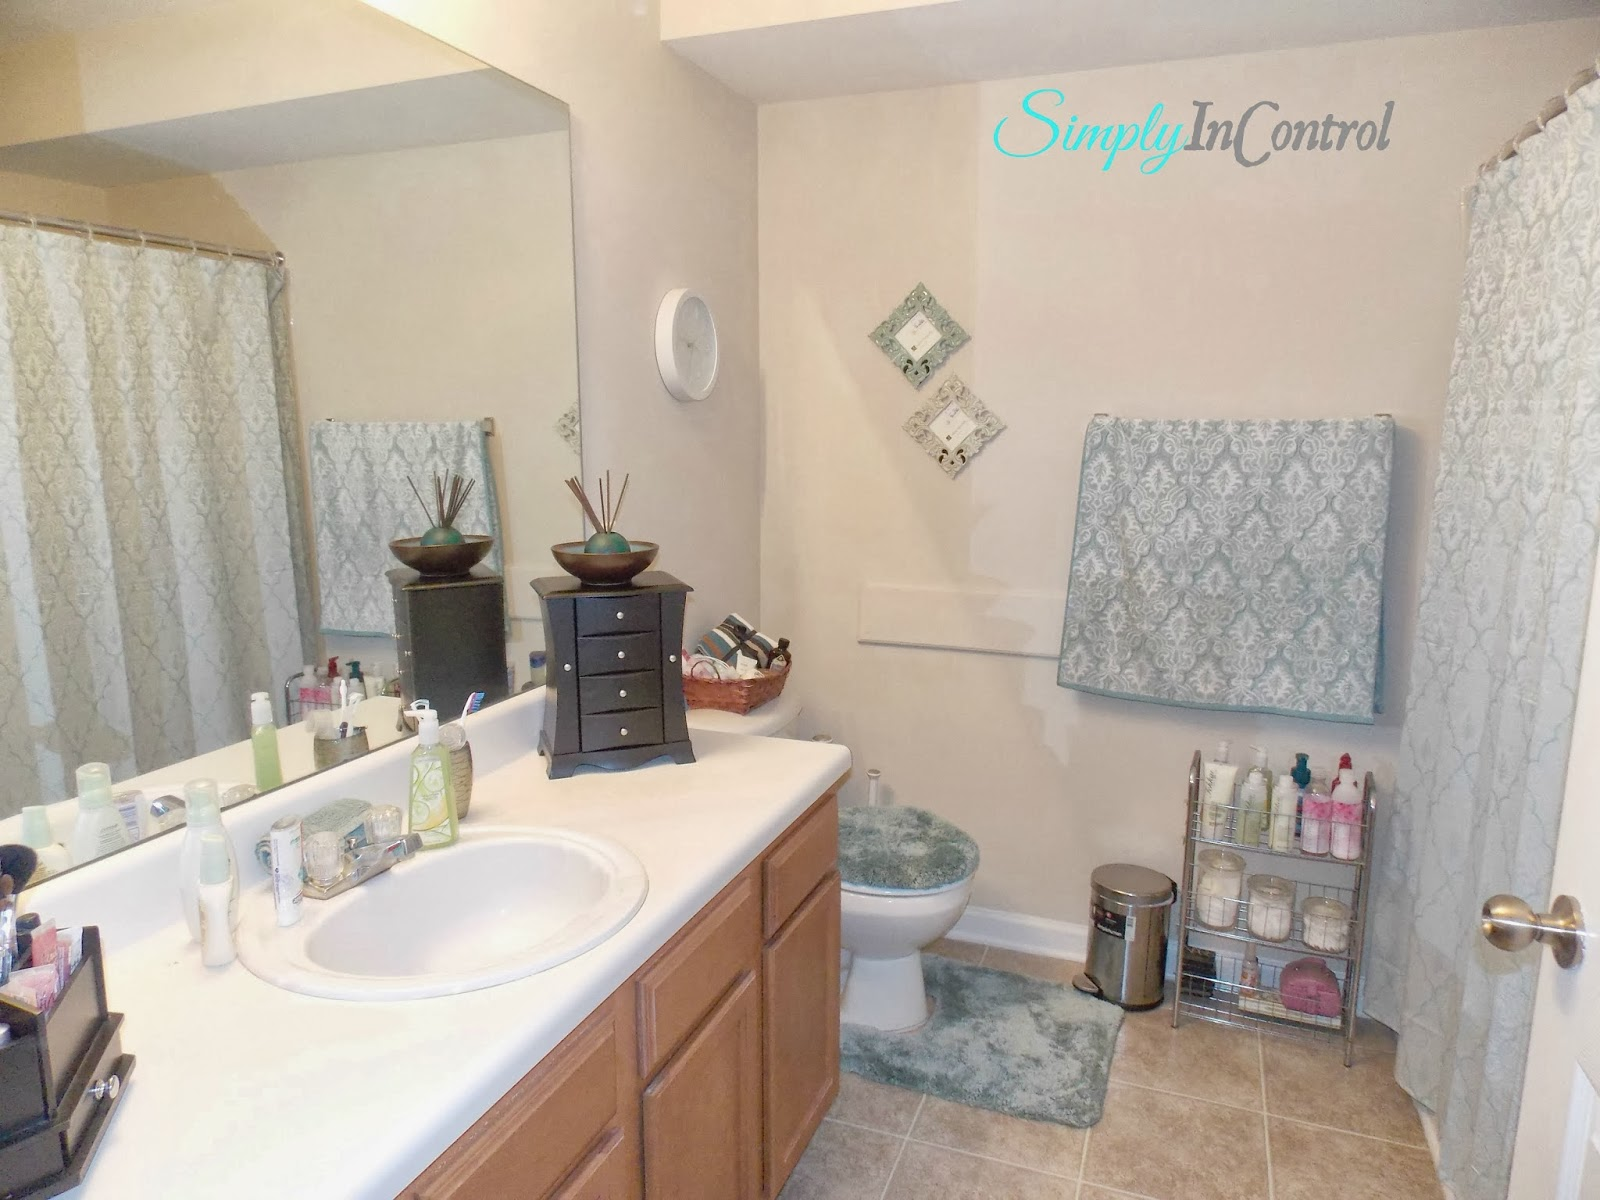 Simply in Control: Apartment Bathroom Makeover and Organization